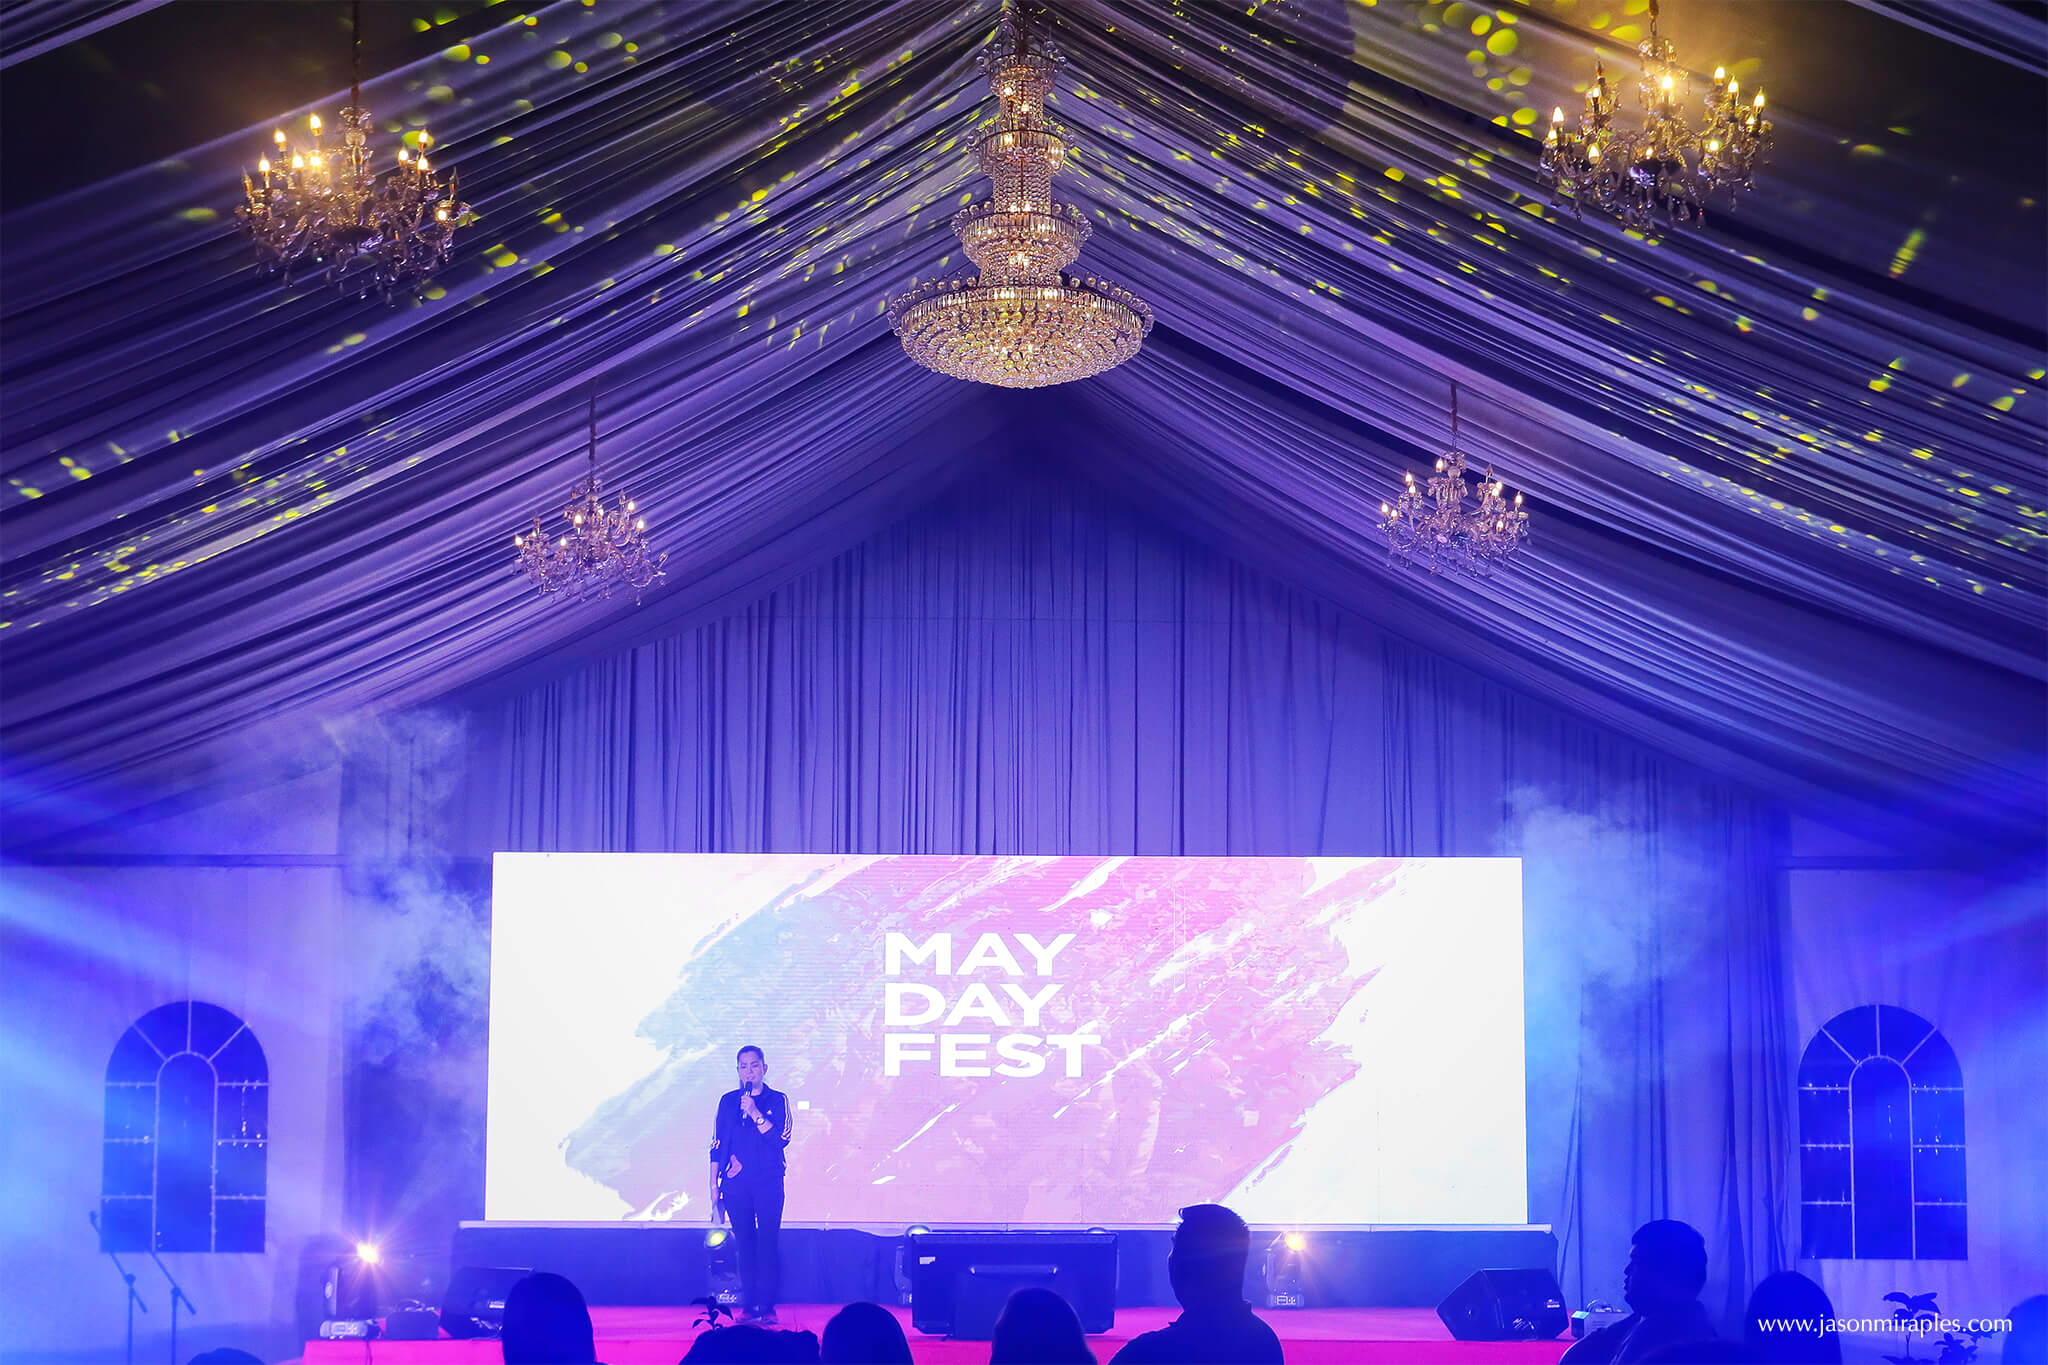 Event Photography Rates in the Philippines